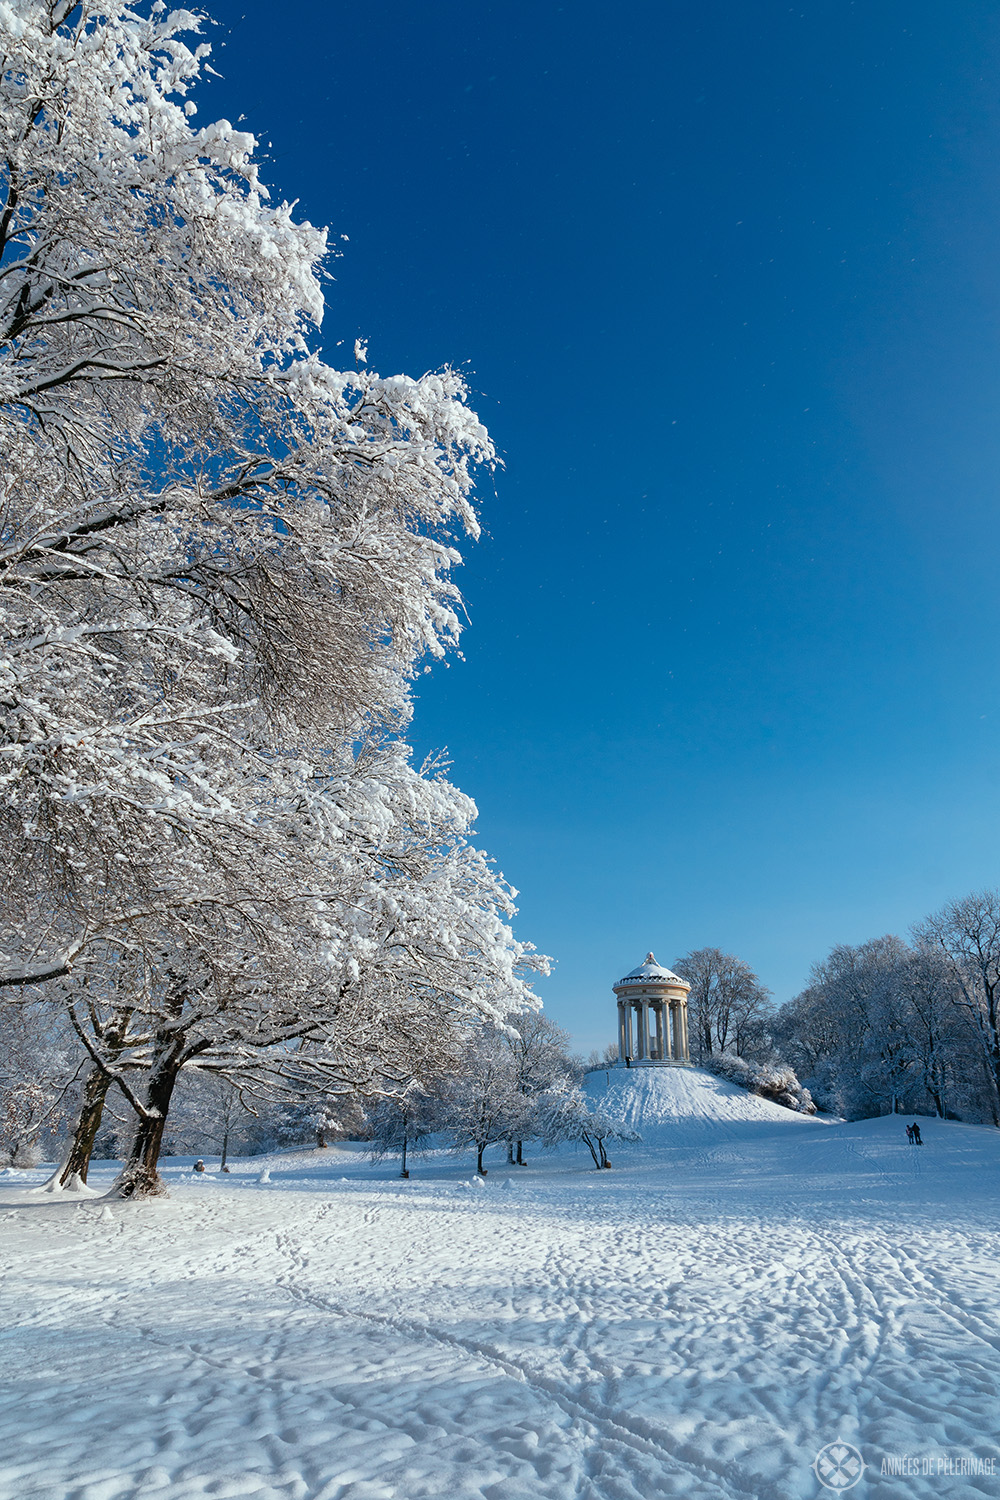 View of the Monopteros in the Englische Garten in winter